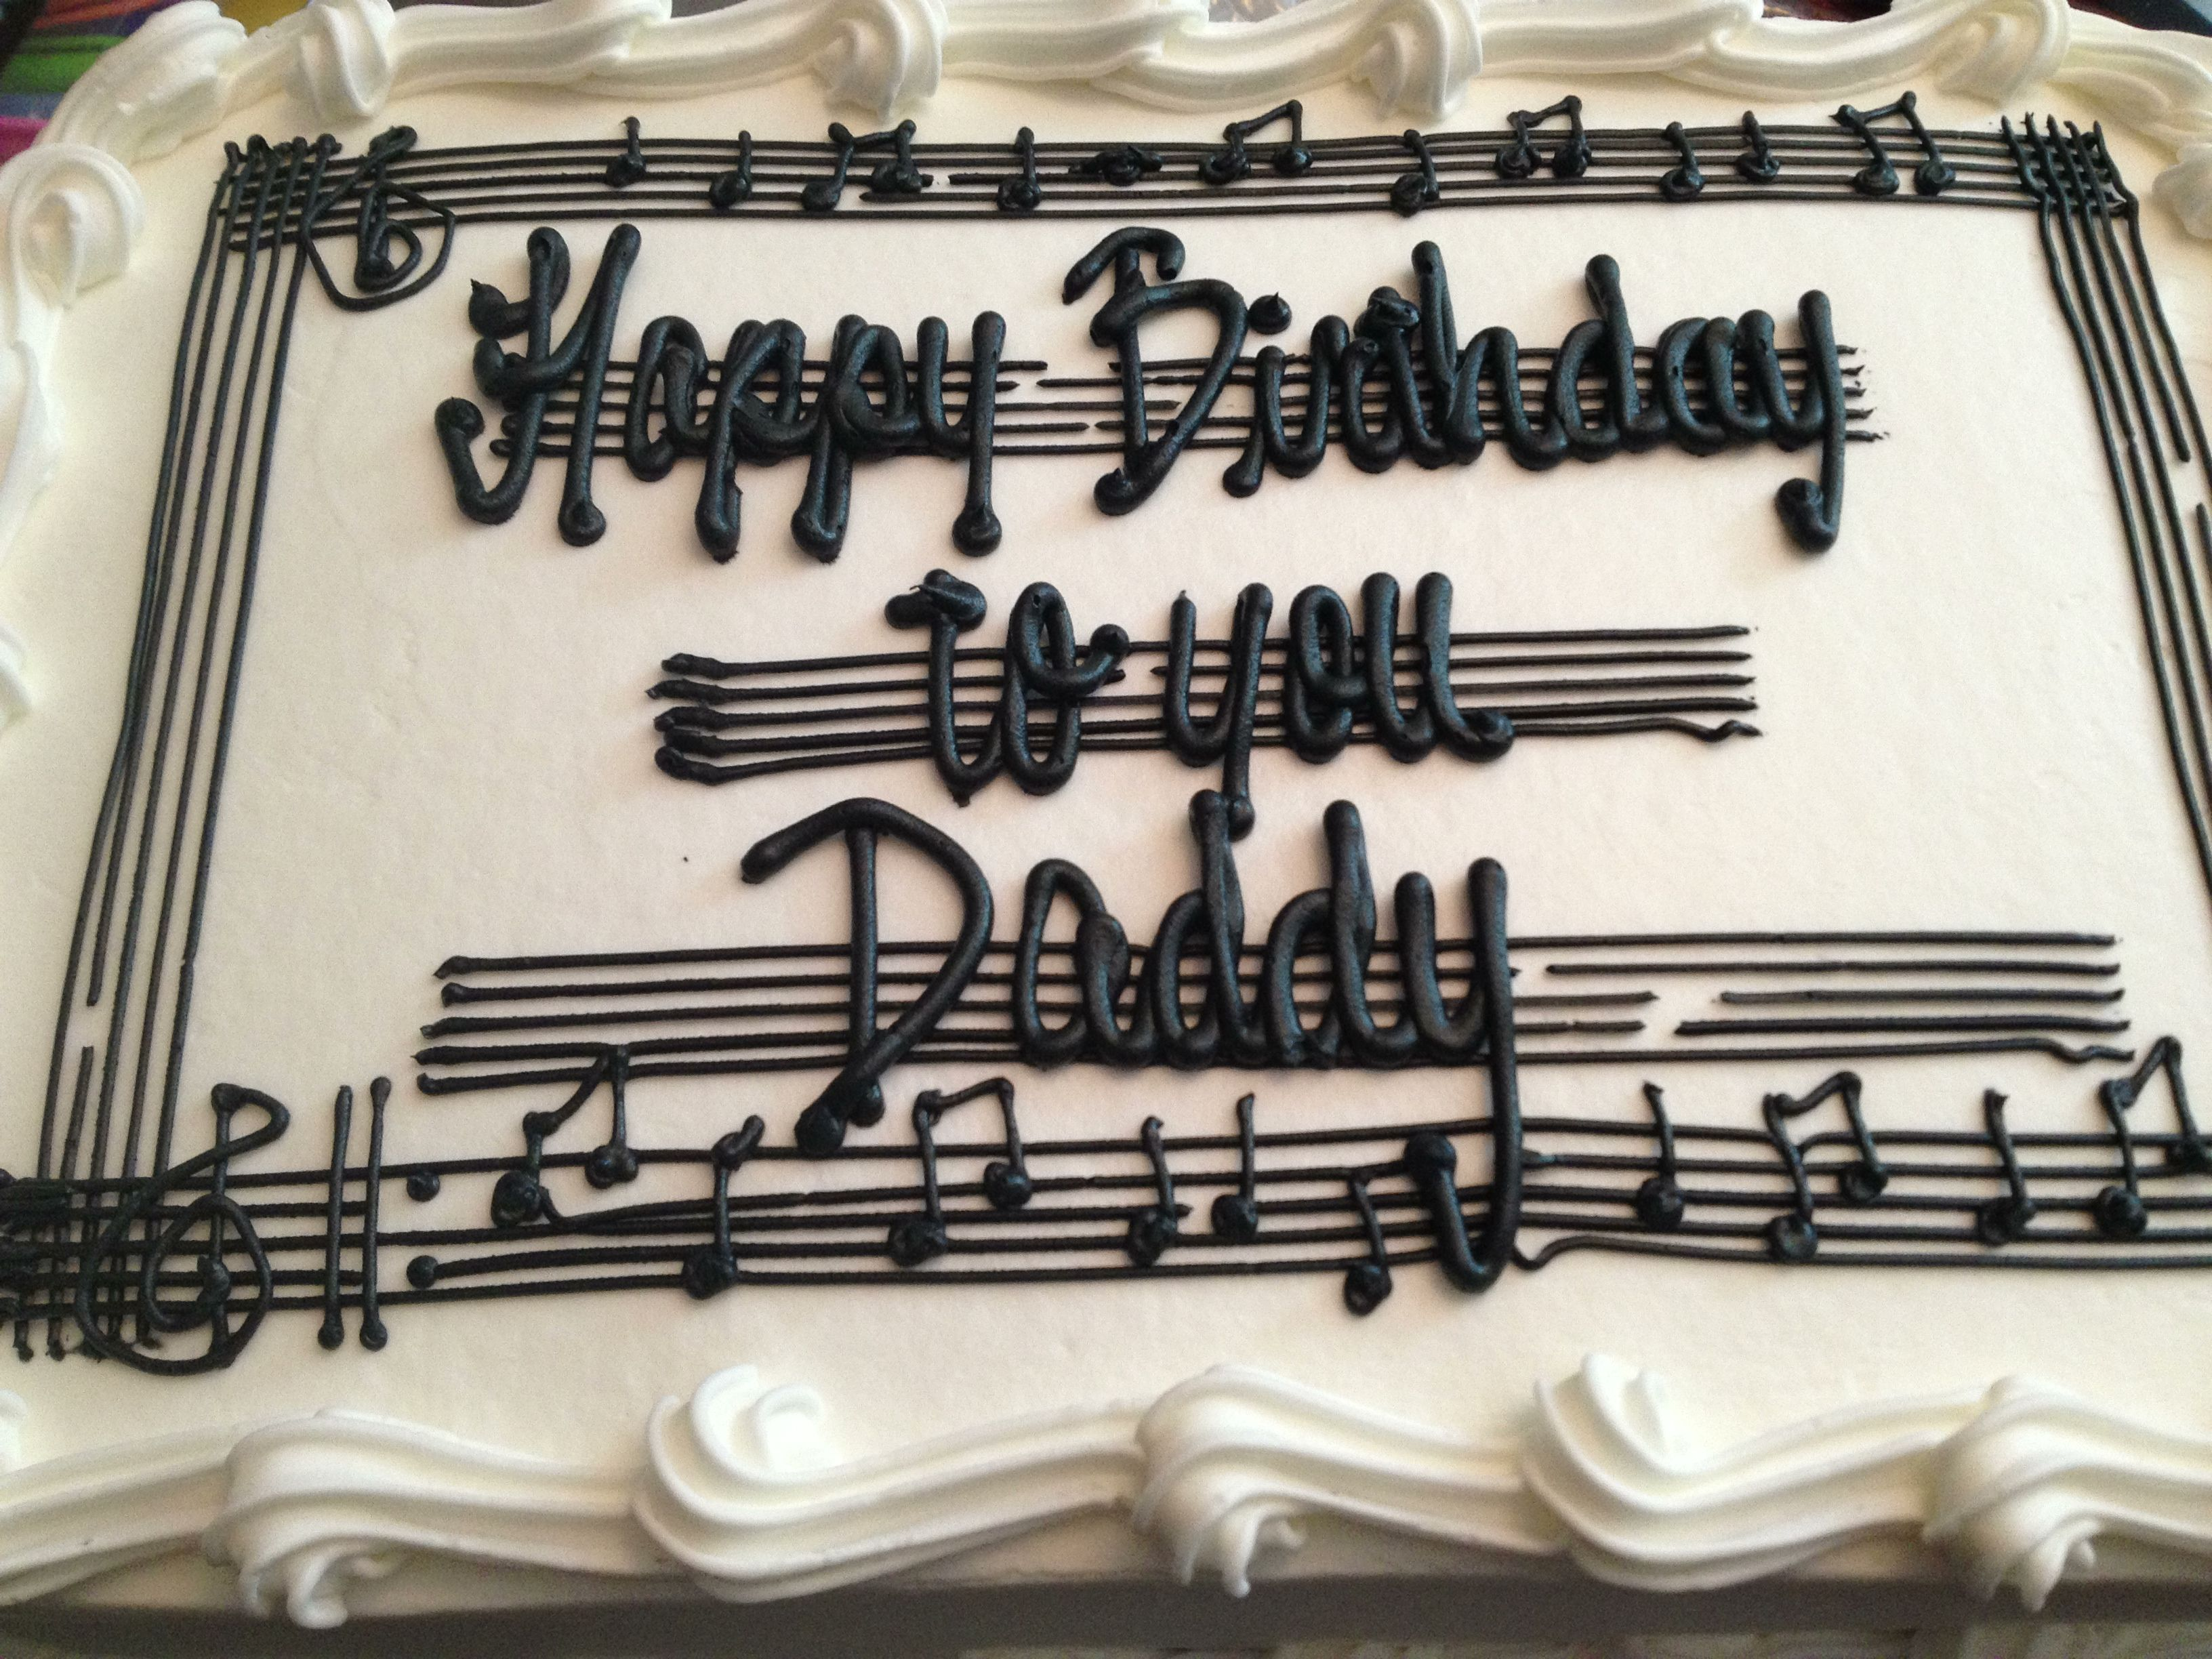 Cake For Daddy Music Themed Cakes Music Cakes Music Birthday Cakes